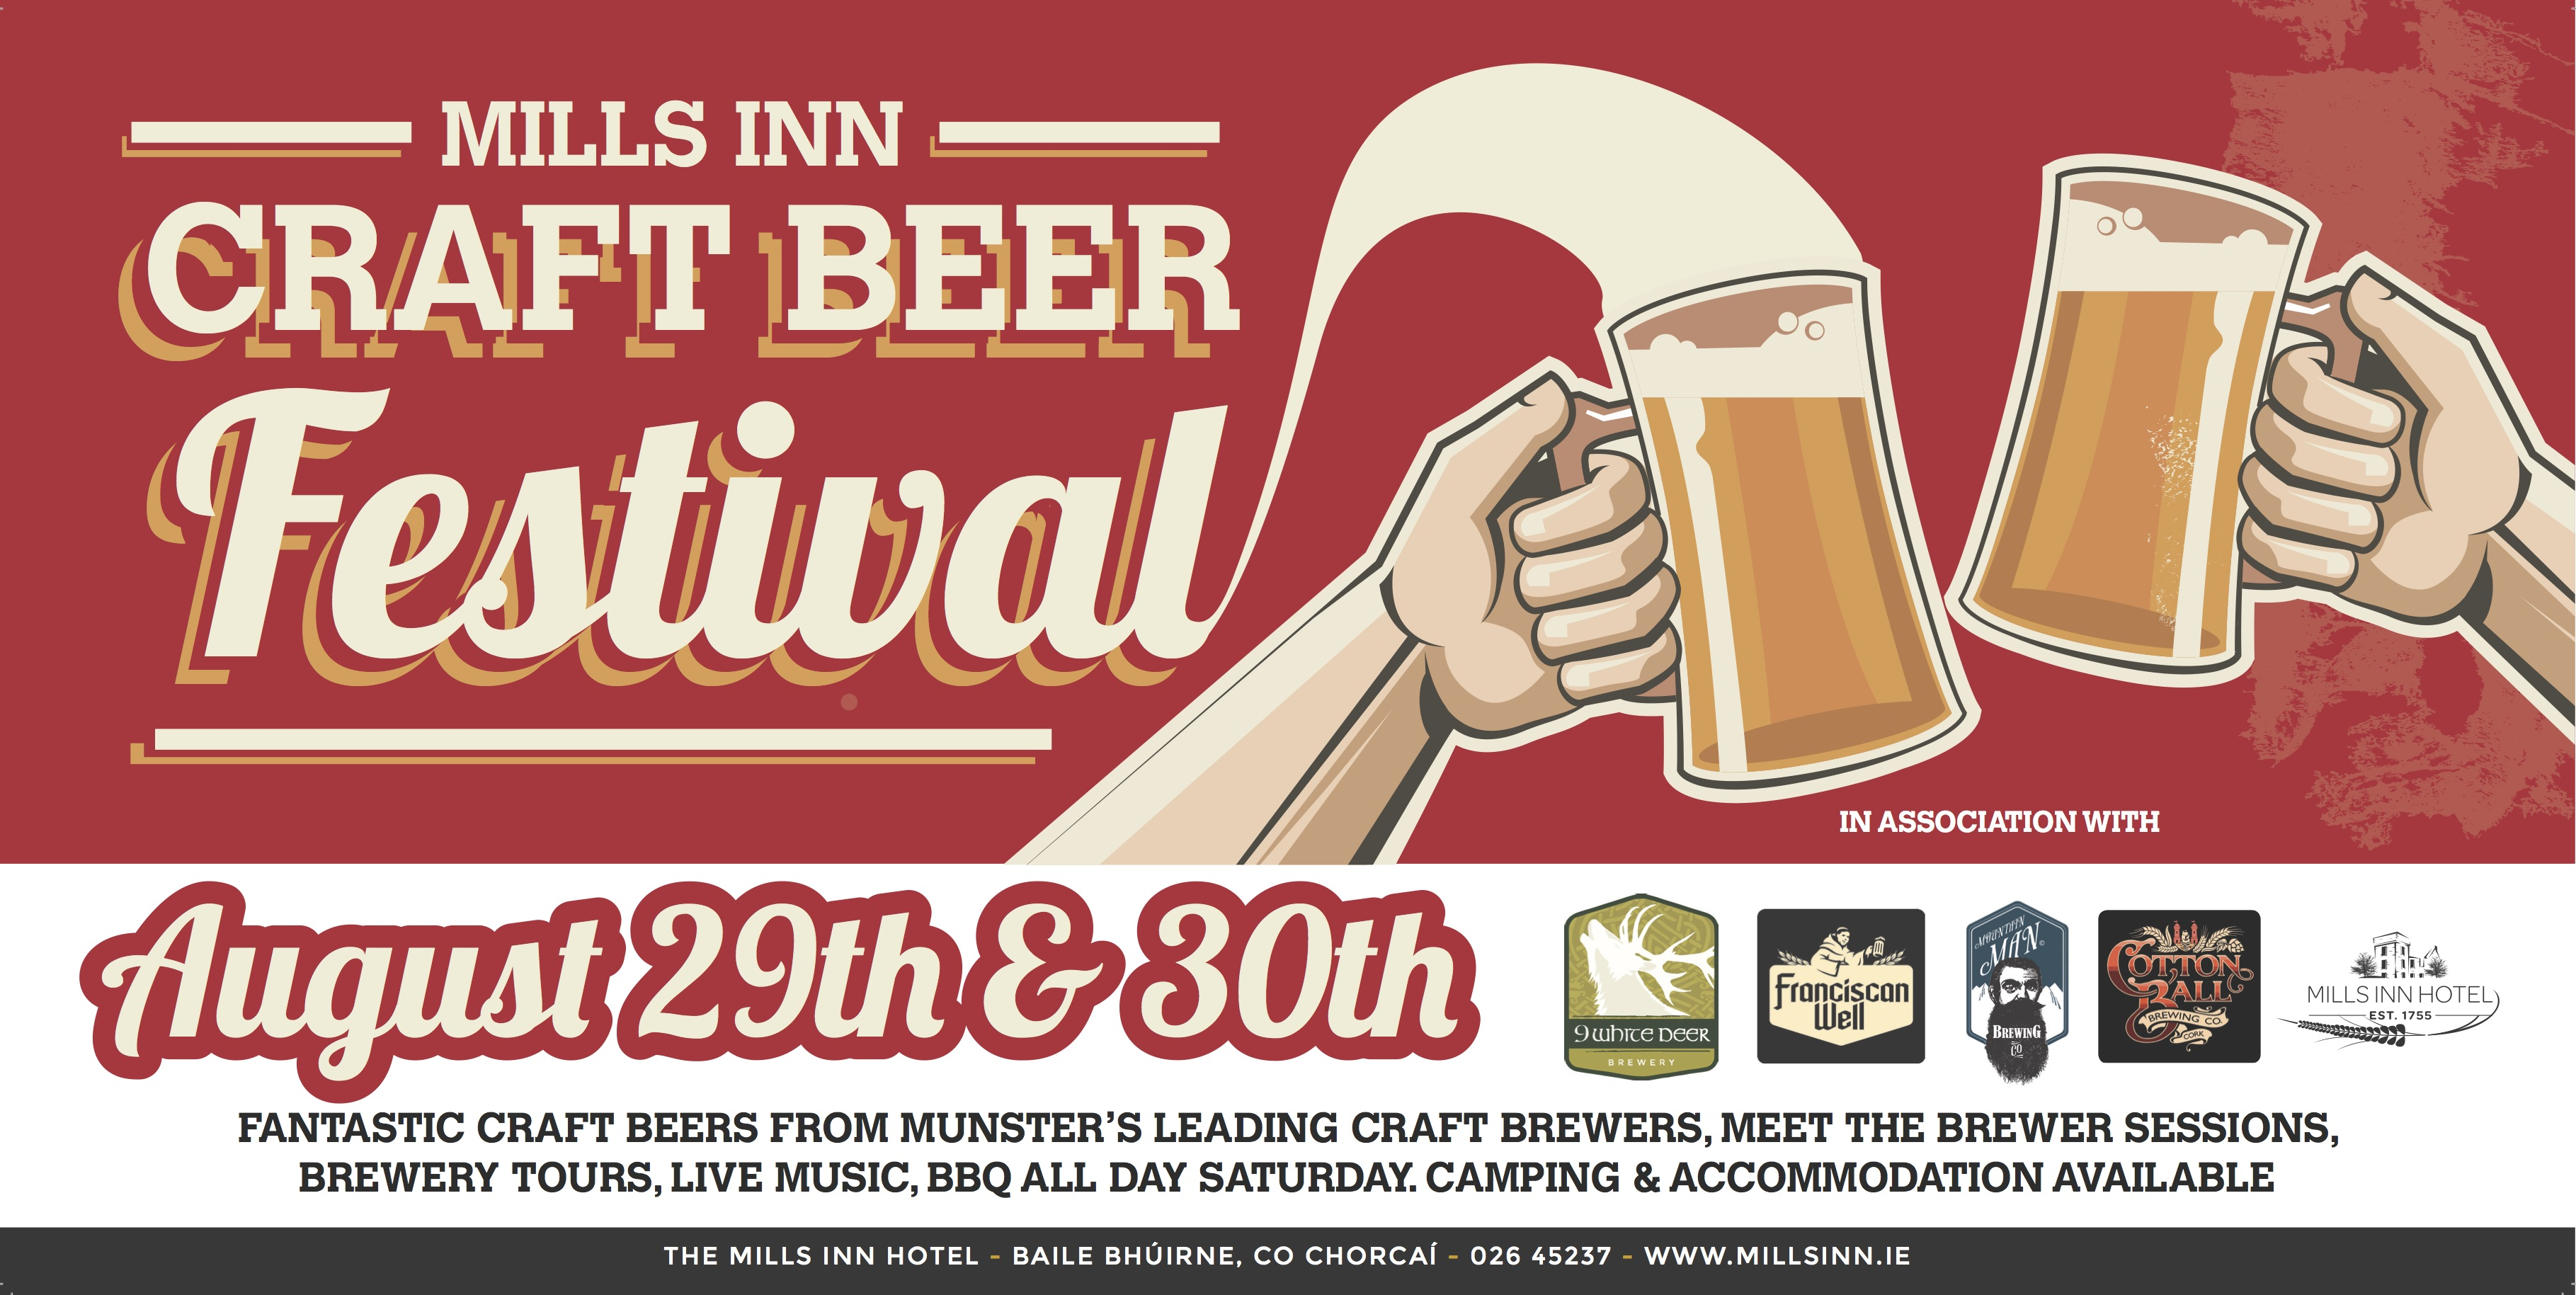 Mills Inn Craft Beer Festival